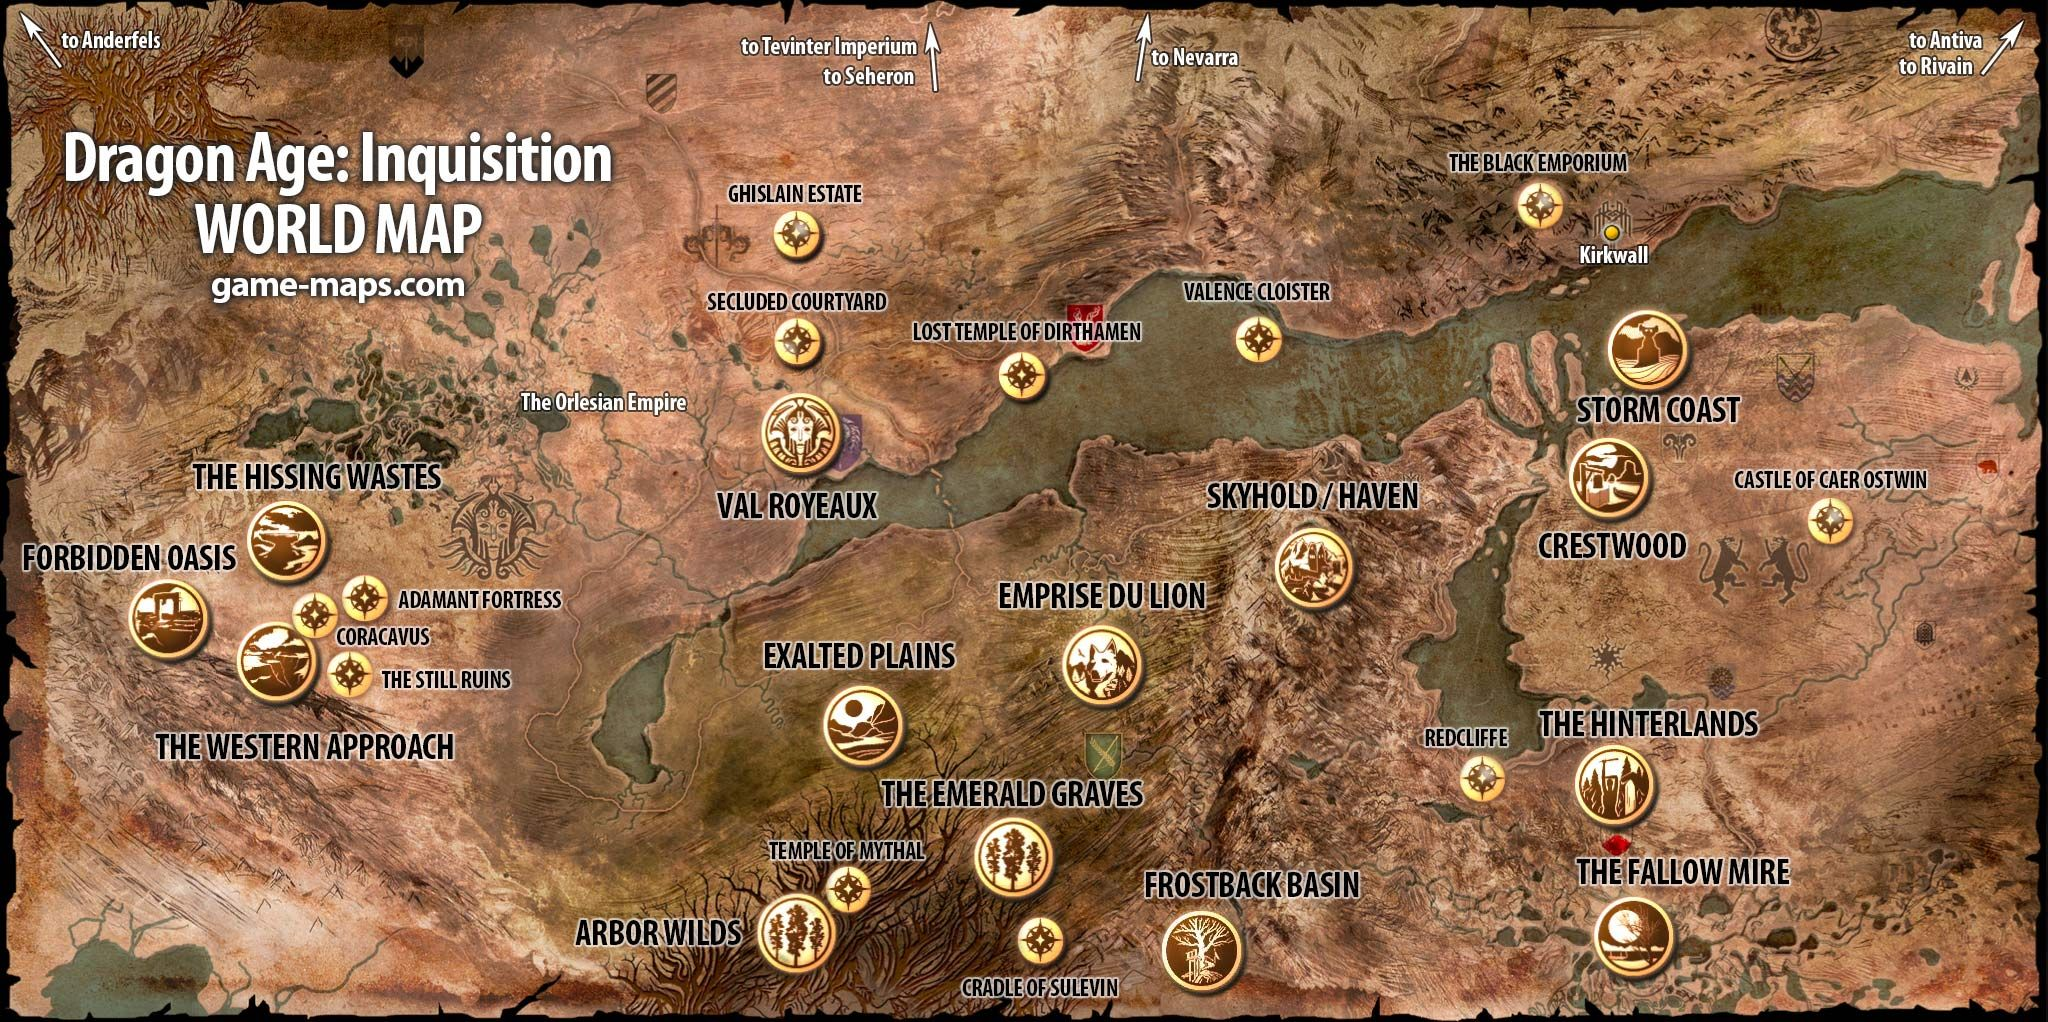 Dragon Age Inquisition World Map Game Maps Com Throughout ...